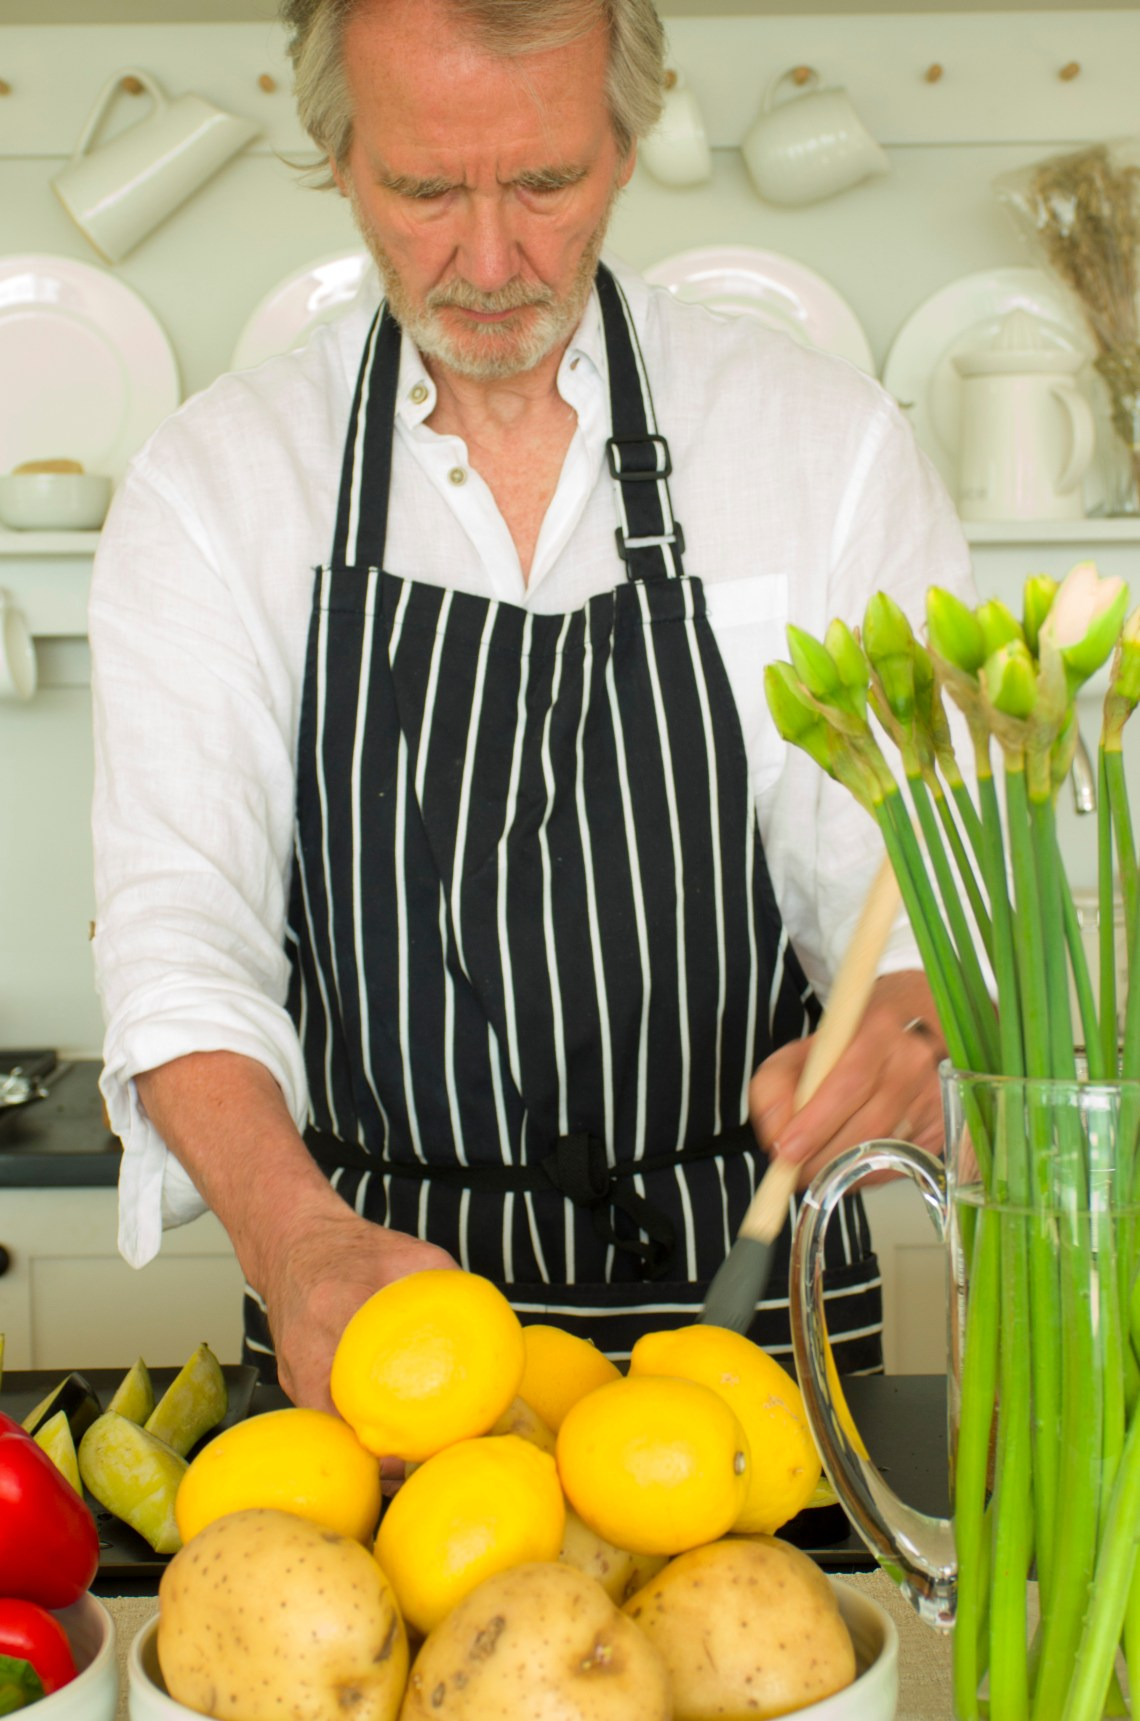 Man cooking, with lemons